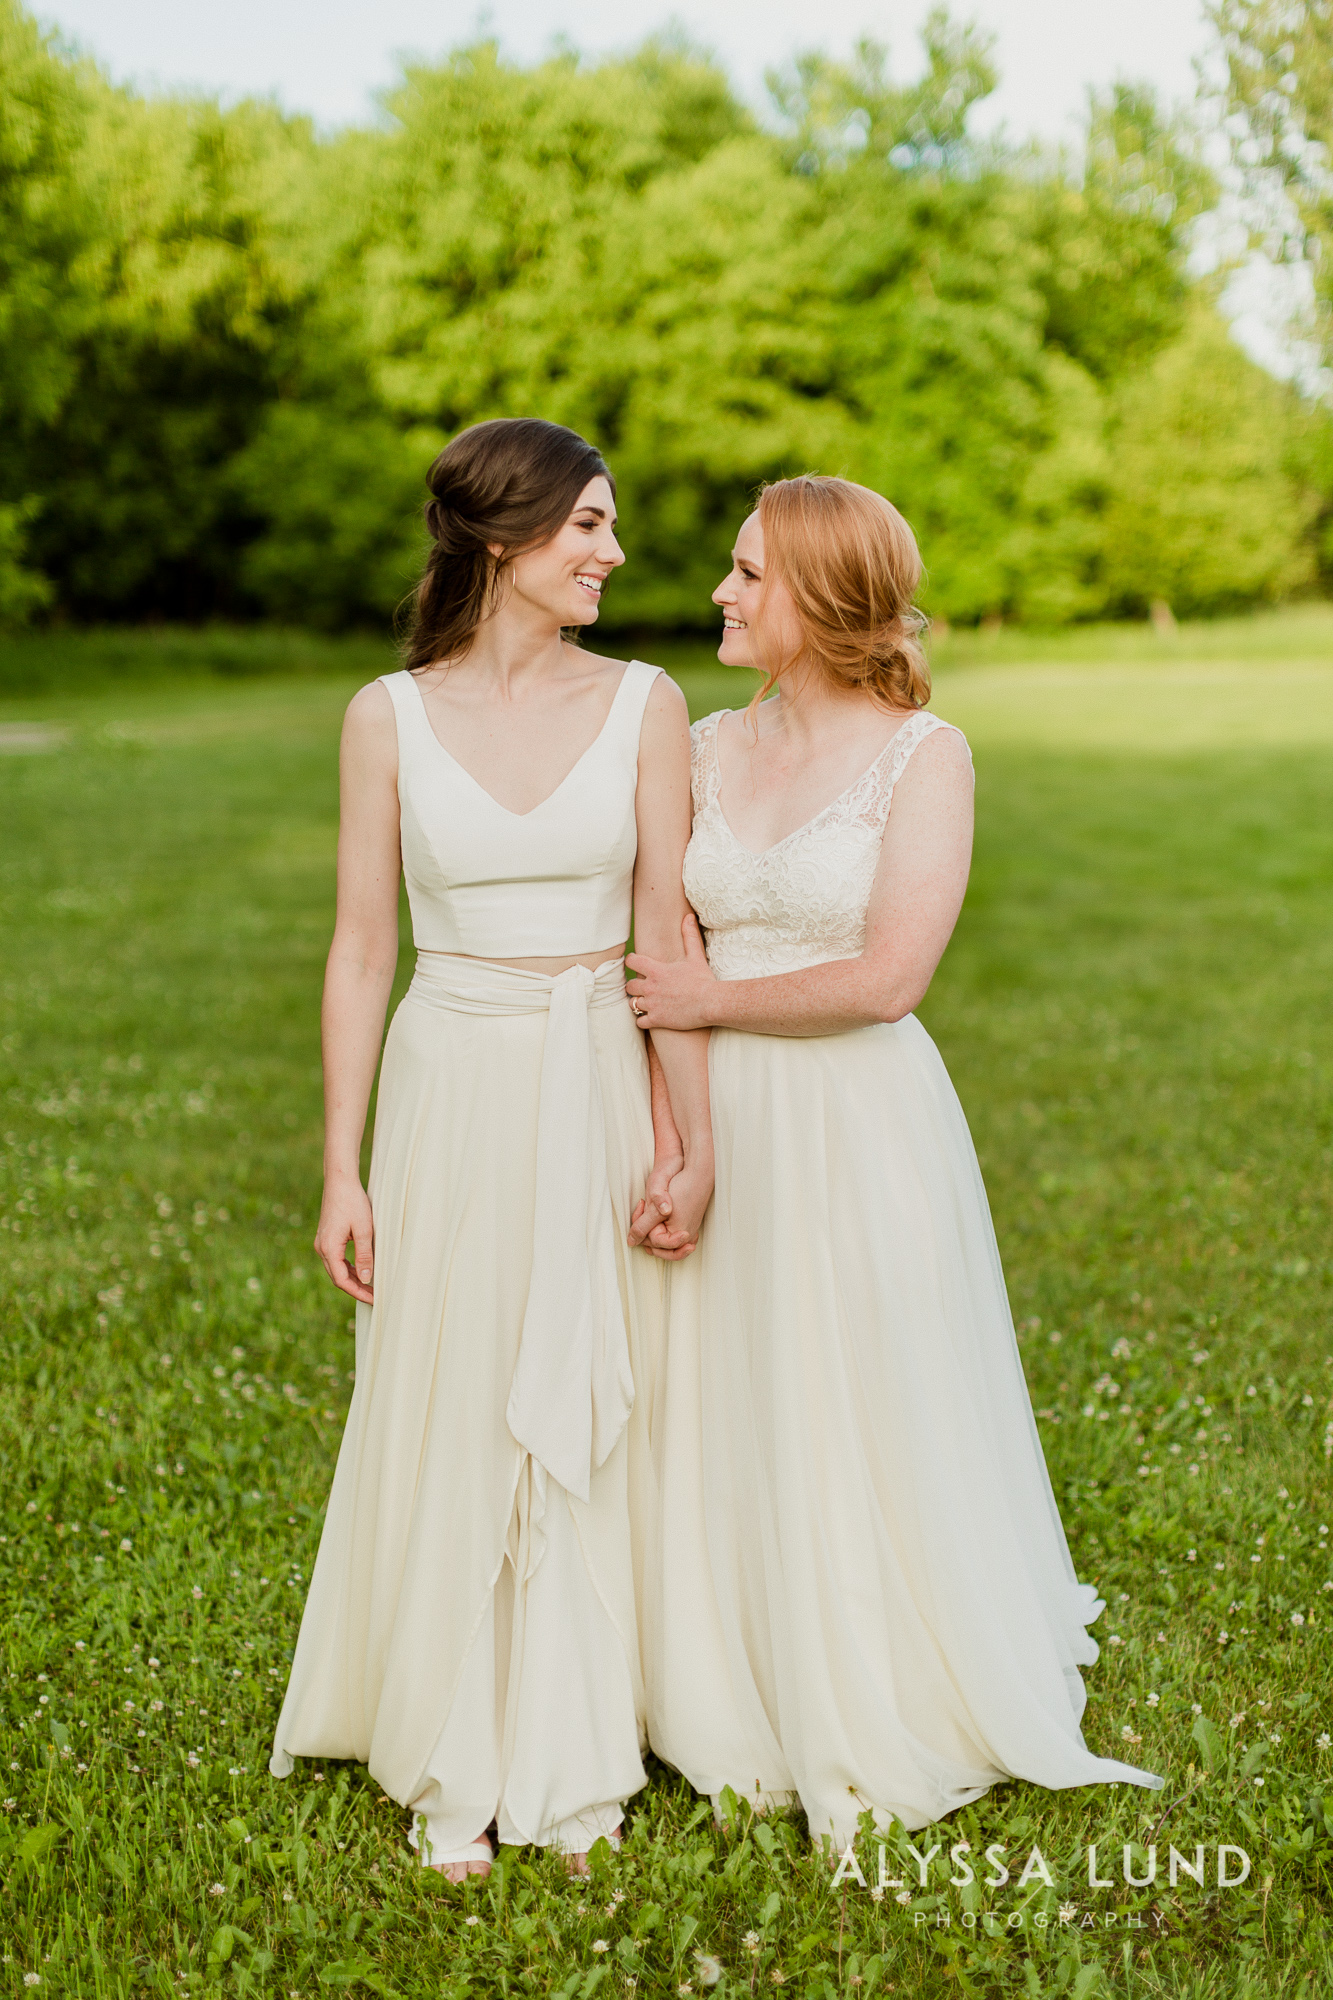 Queer wedding photography inspiration by Alyssa Lund Photography-37.jpg